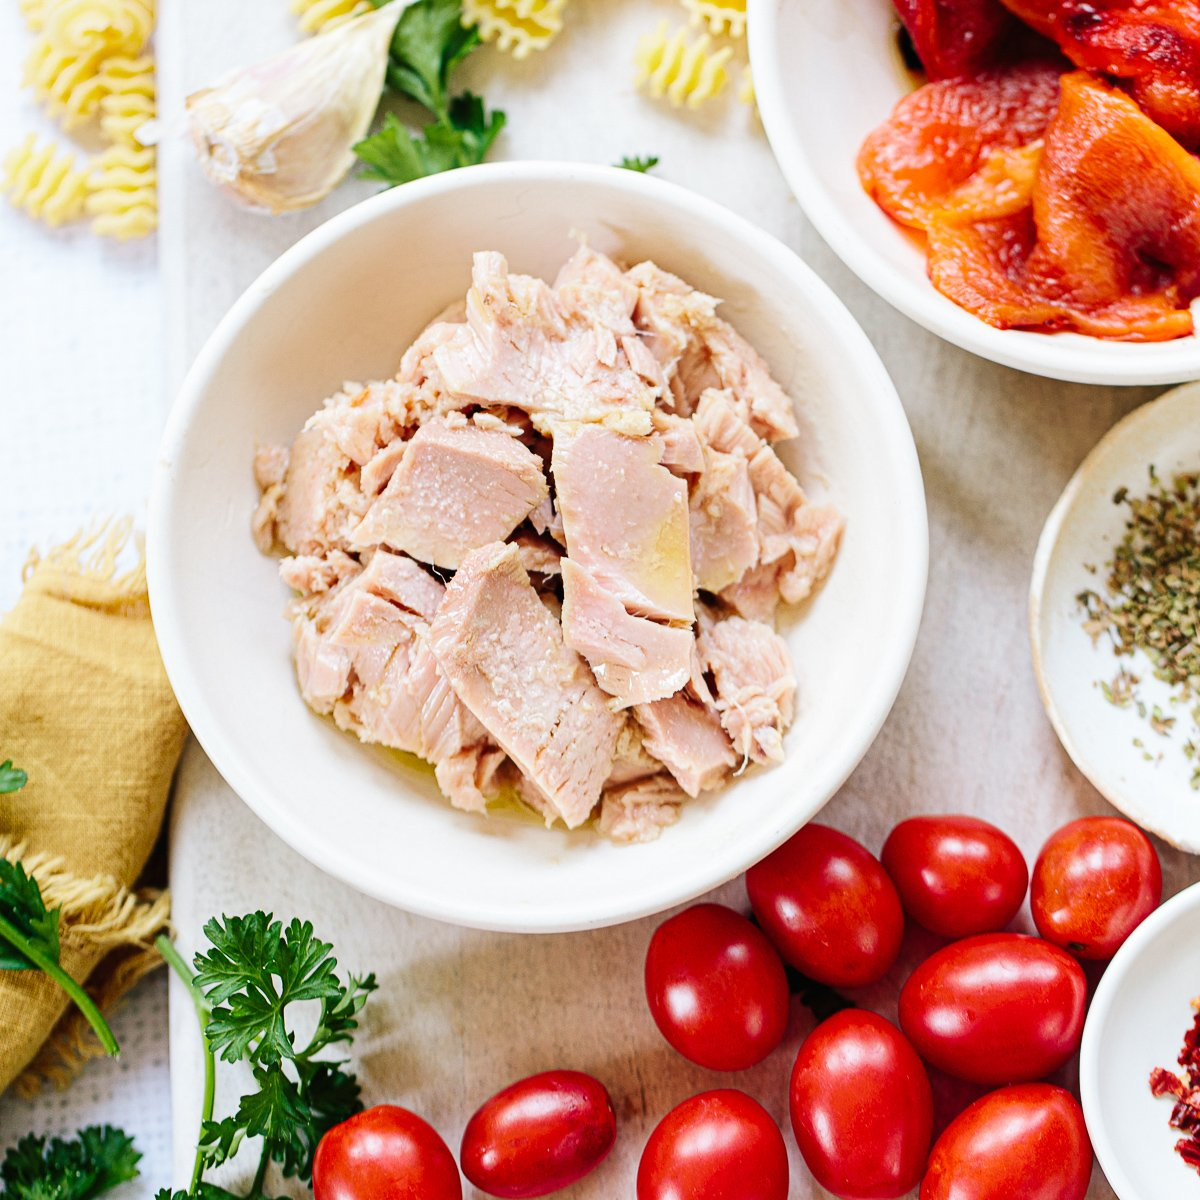 Close up photo of a bowl of canned tuna chunks in a bowl, surrounded by tomatoes, parsley and garlic.